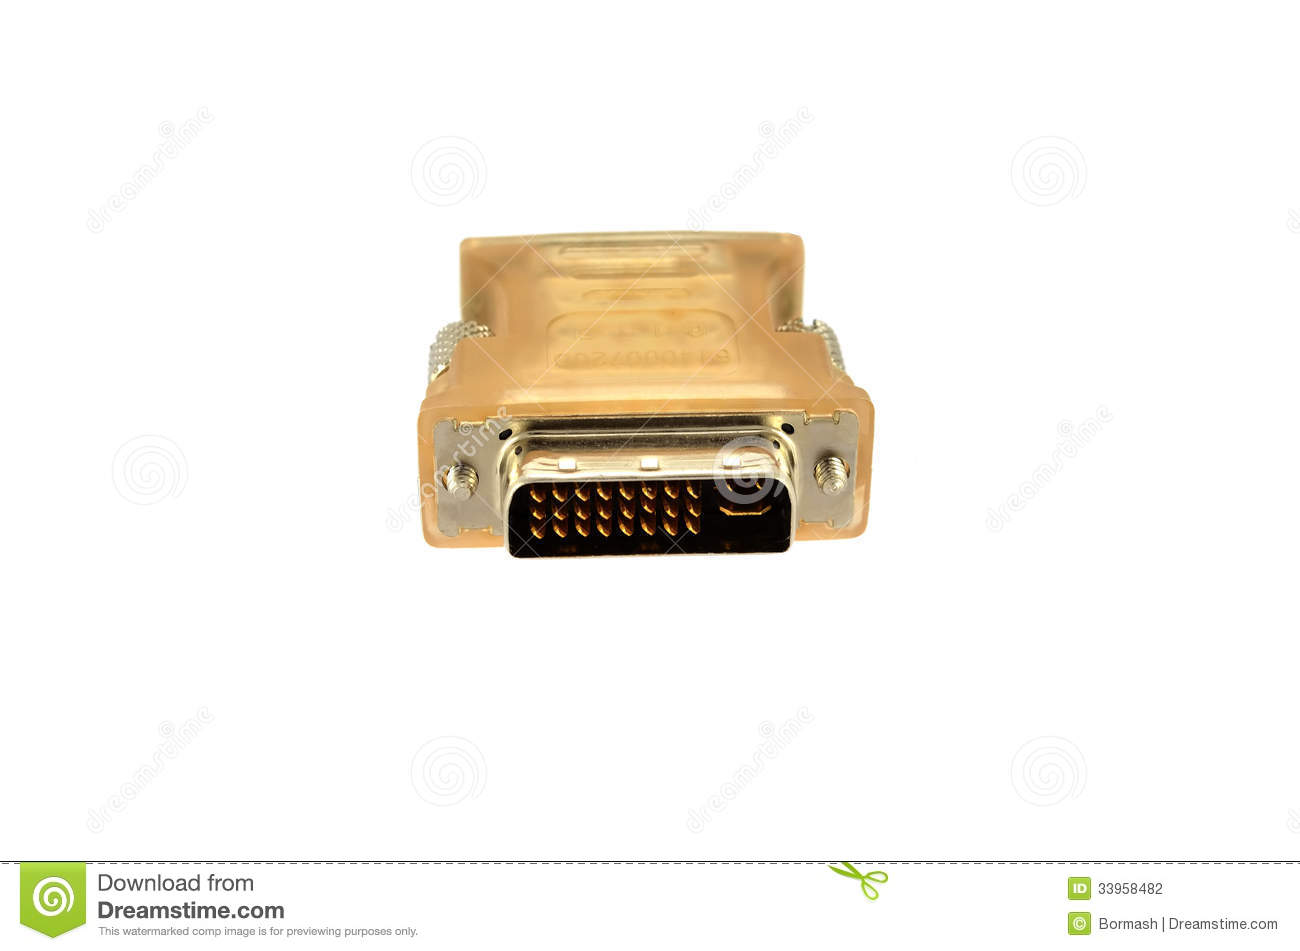 Computer Monitor Plug : D sub plug and socket stock photography image